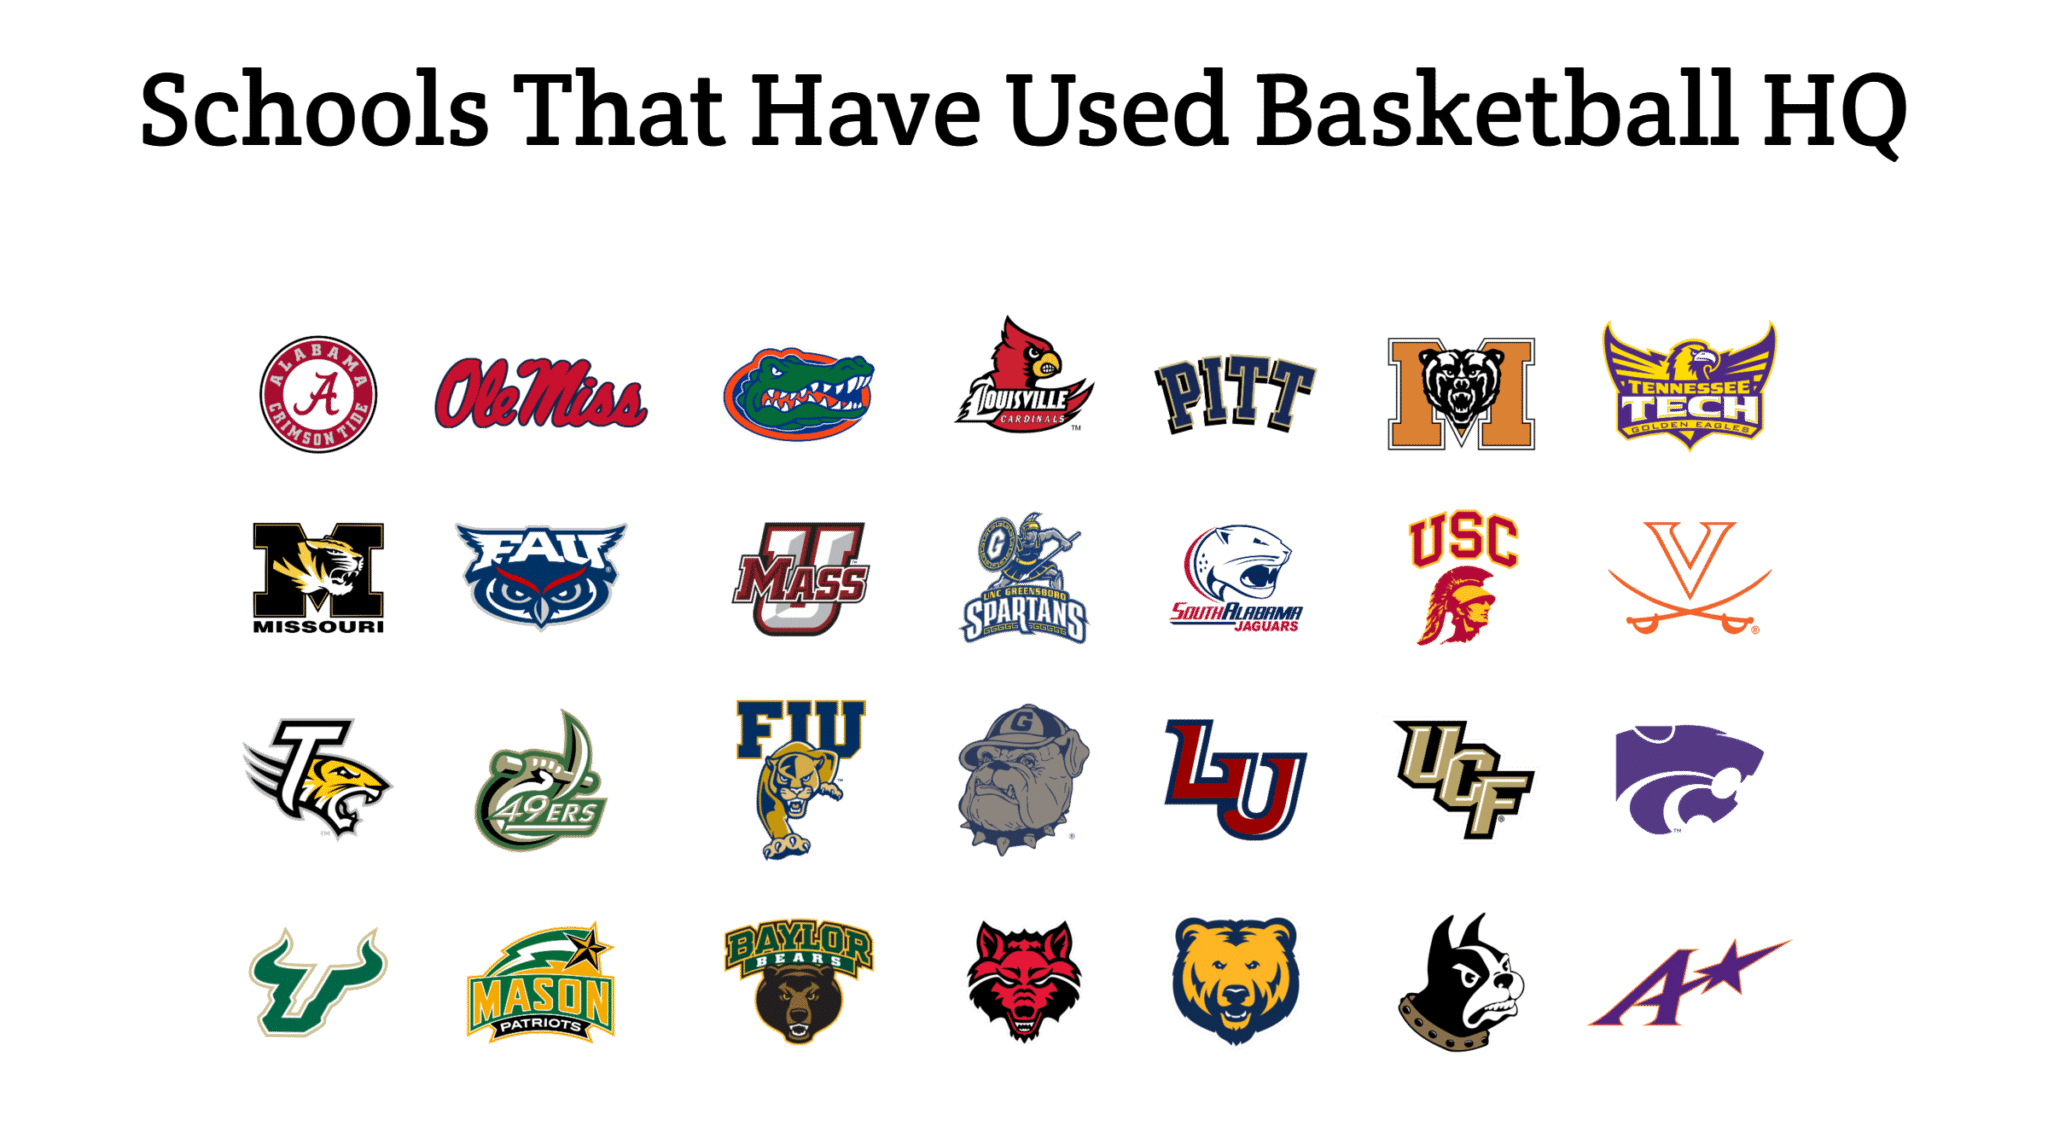 Schools That Have Used Basketball HQ